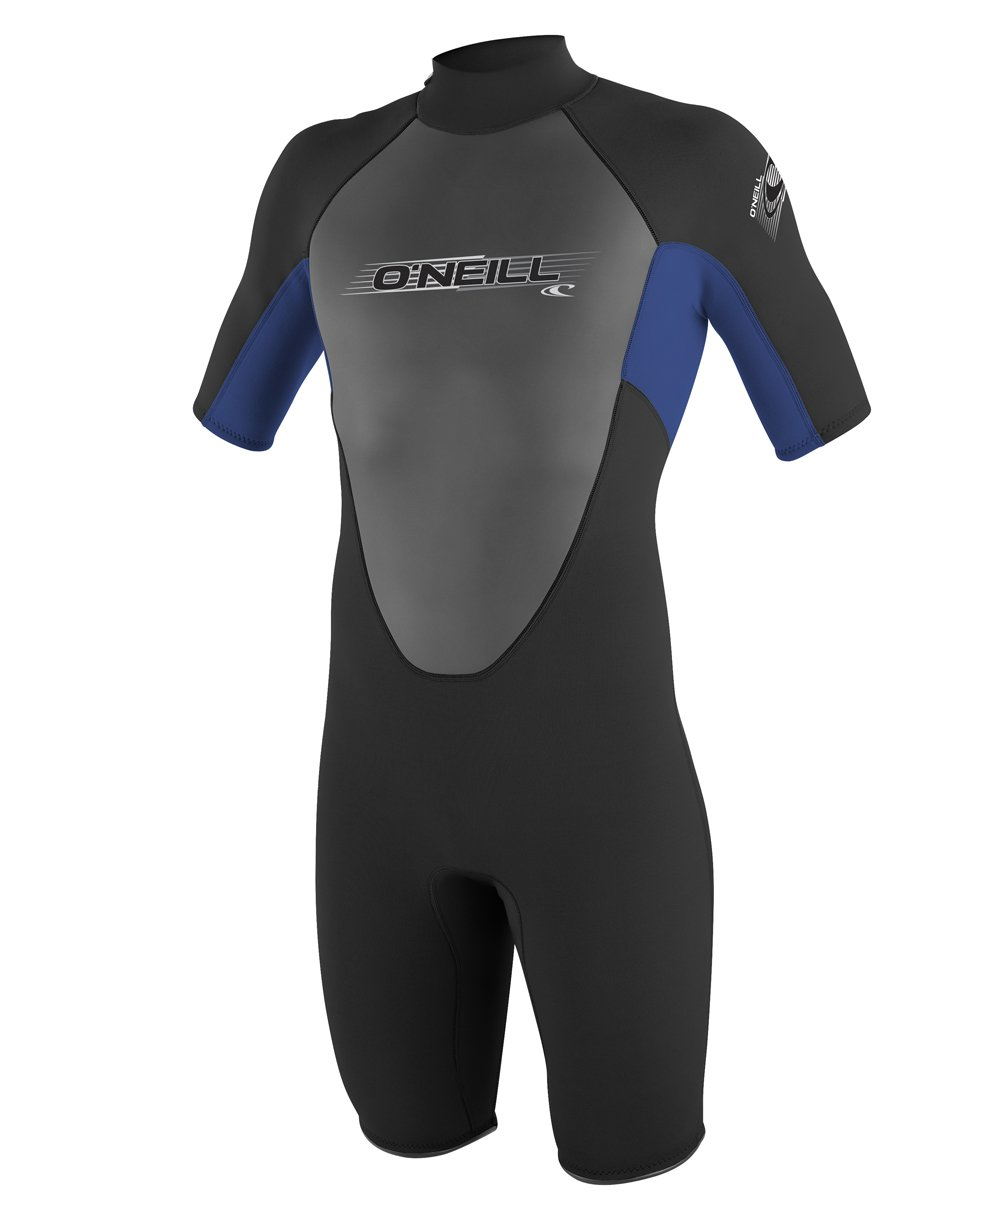 O'Neill Youth Reactor 2mm Back Zip Spring Wetsuit, Black/Pacific/Black, 6 by O'Neill Wetsuits